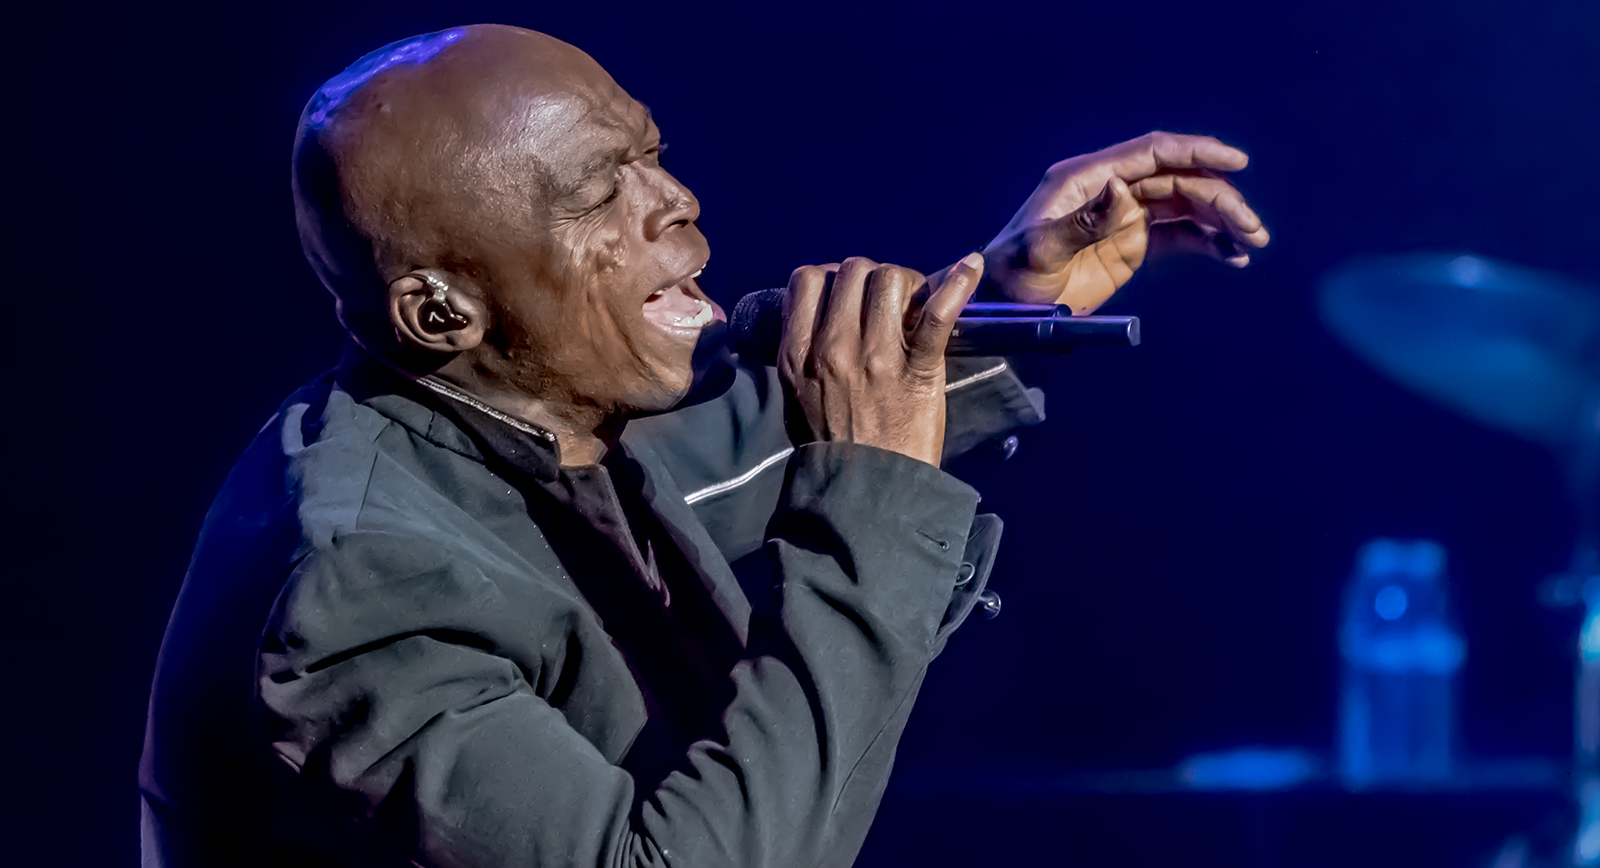 Seal-2016-Concert-Review-Photography-Fox-Theater-Oakland-Setlist-Live-Show-FI